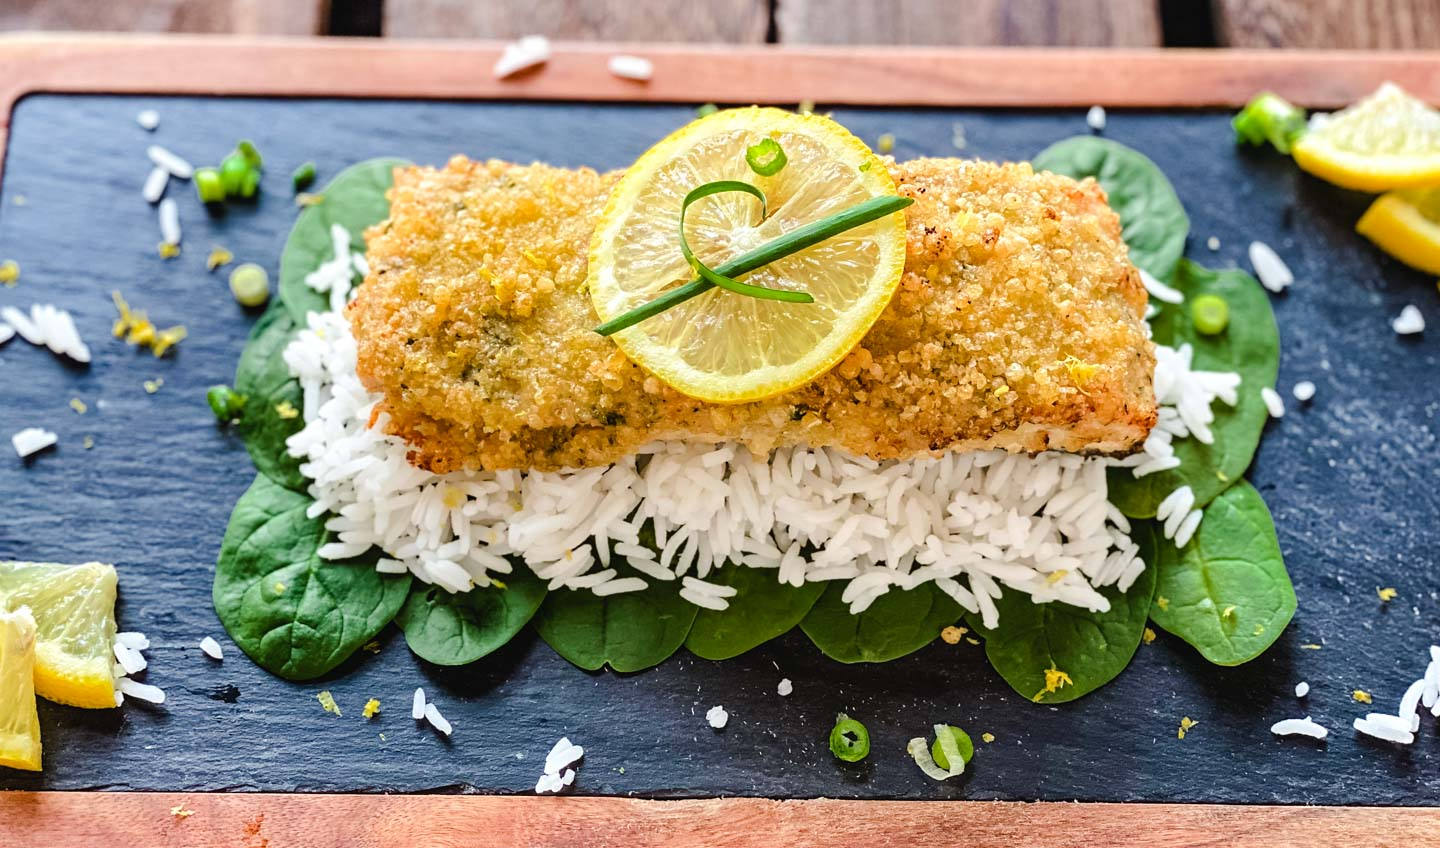 Crusted salmon on rice and spinach leaves with lemons on a cutting board.